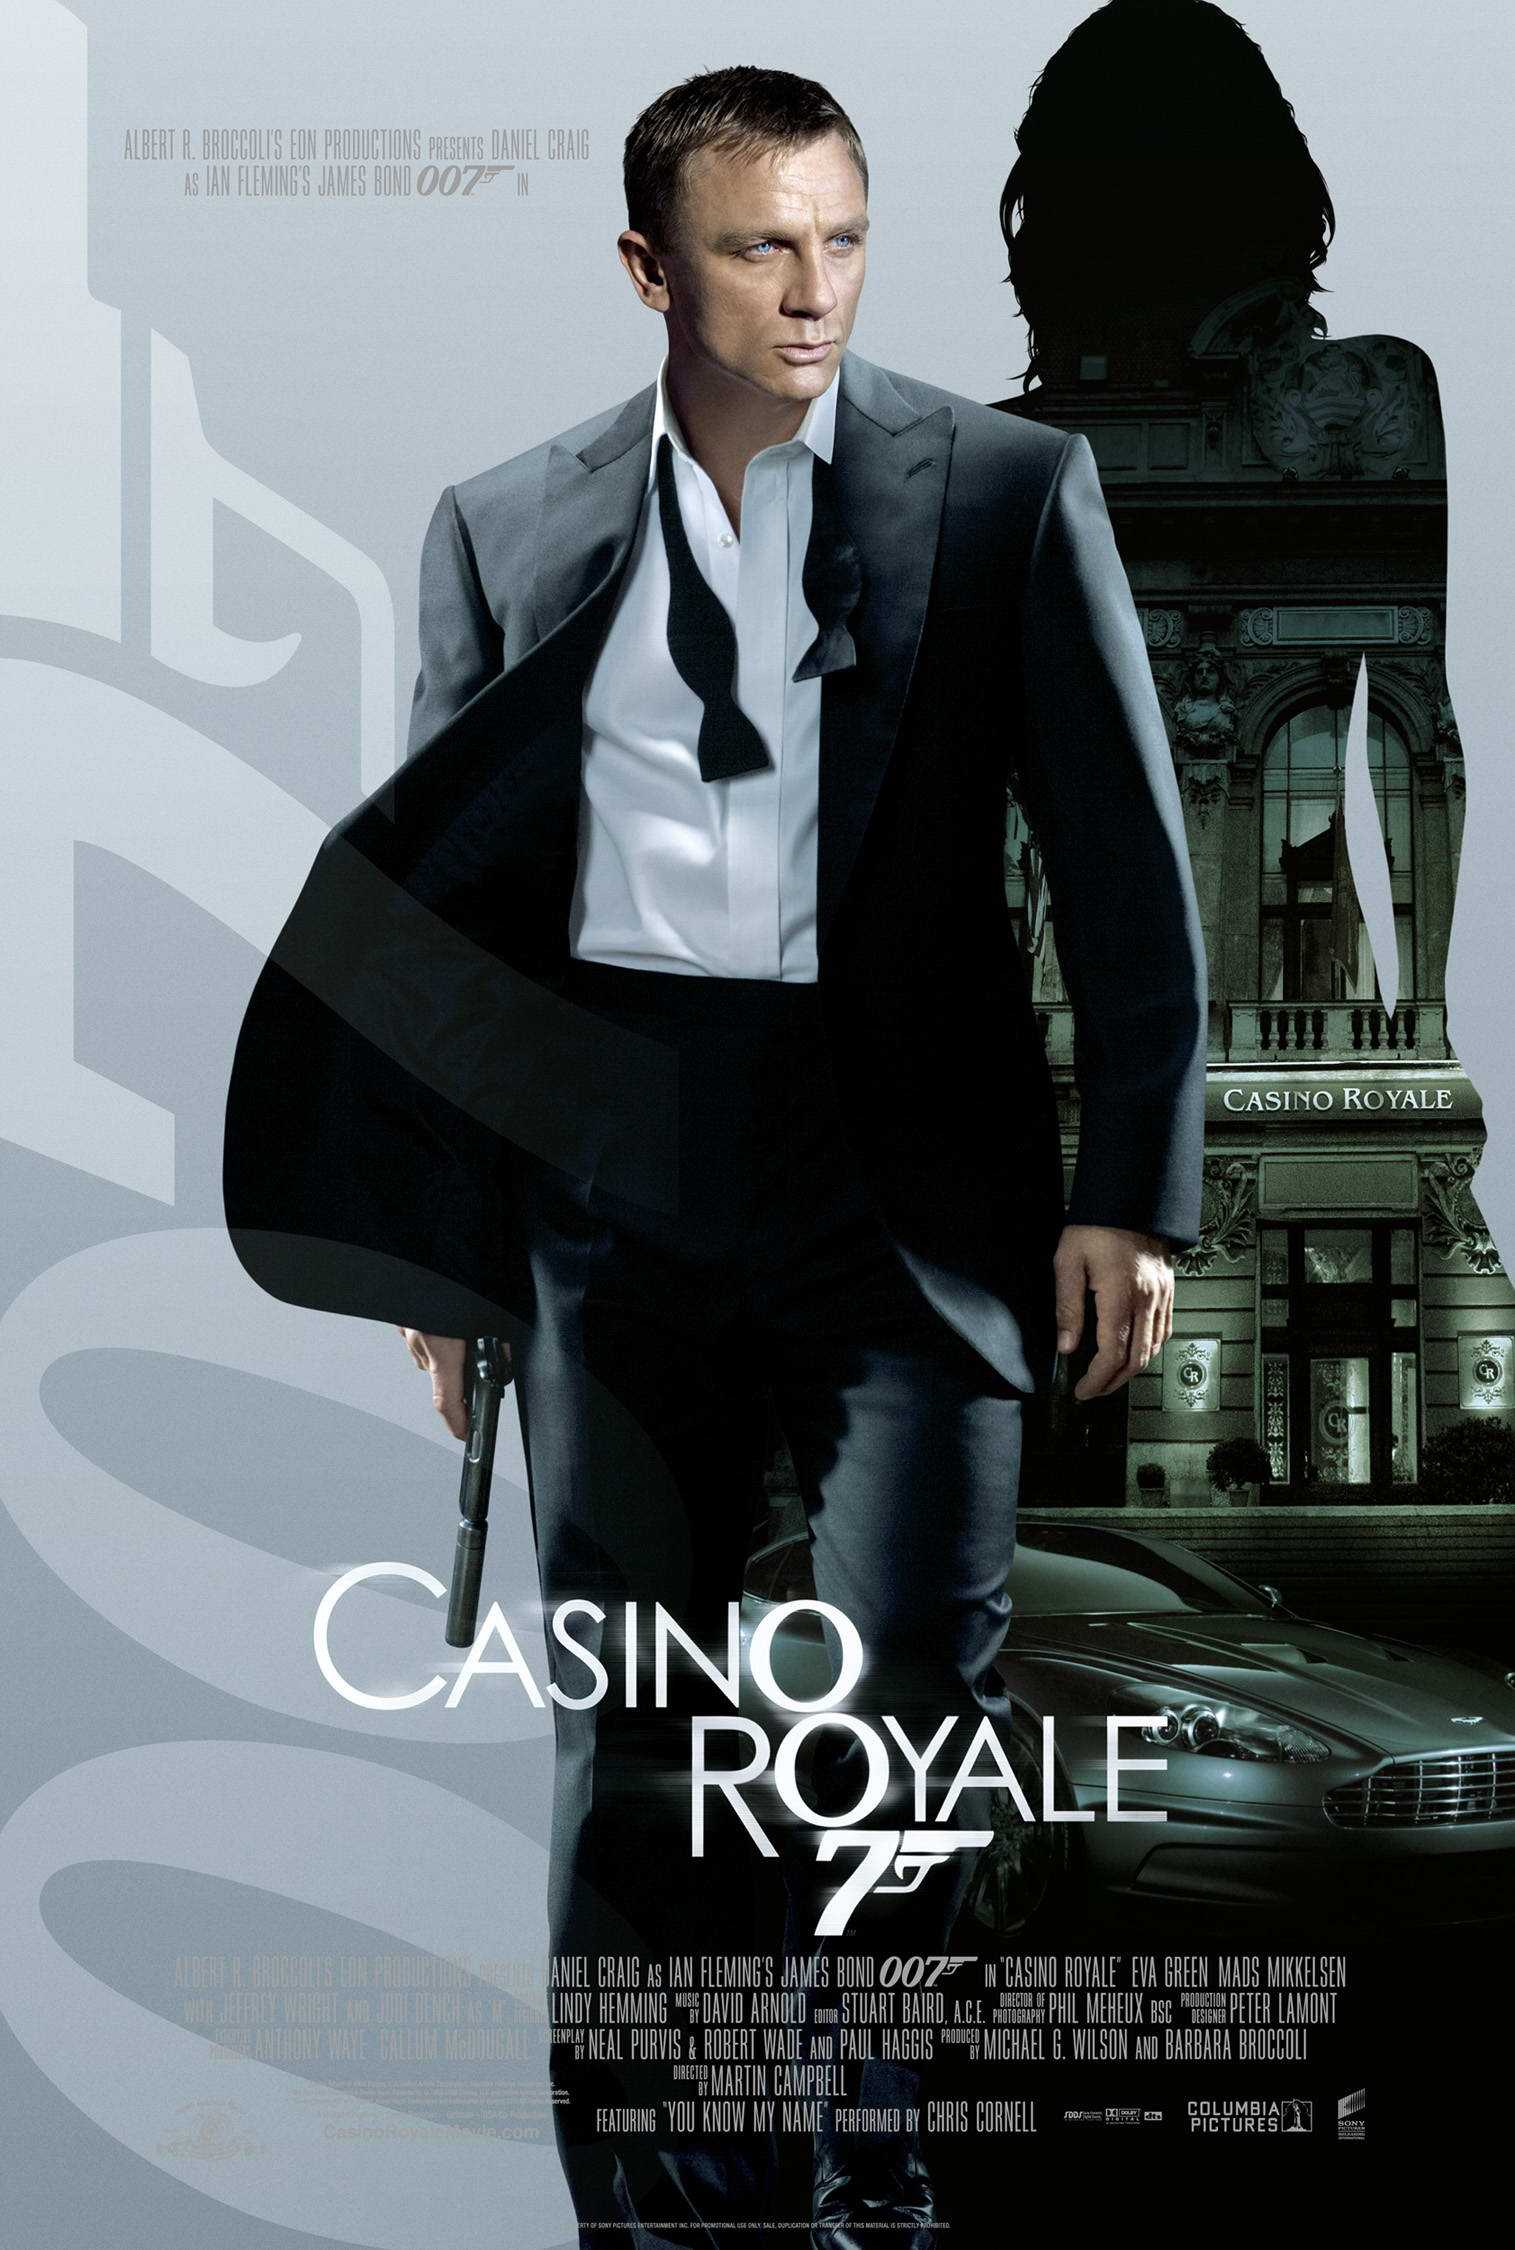 James bond casino royale full movie watch online orange casino chips at the muckleshoot